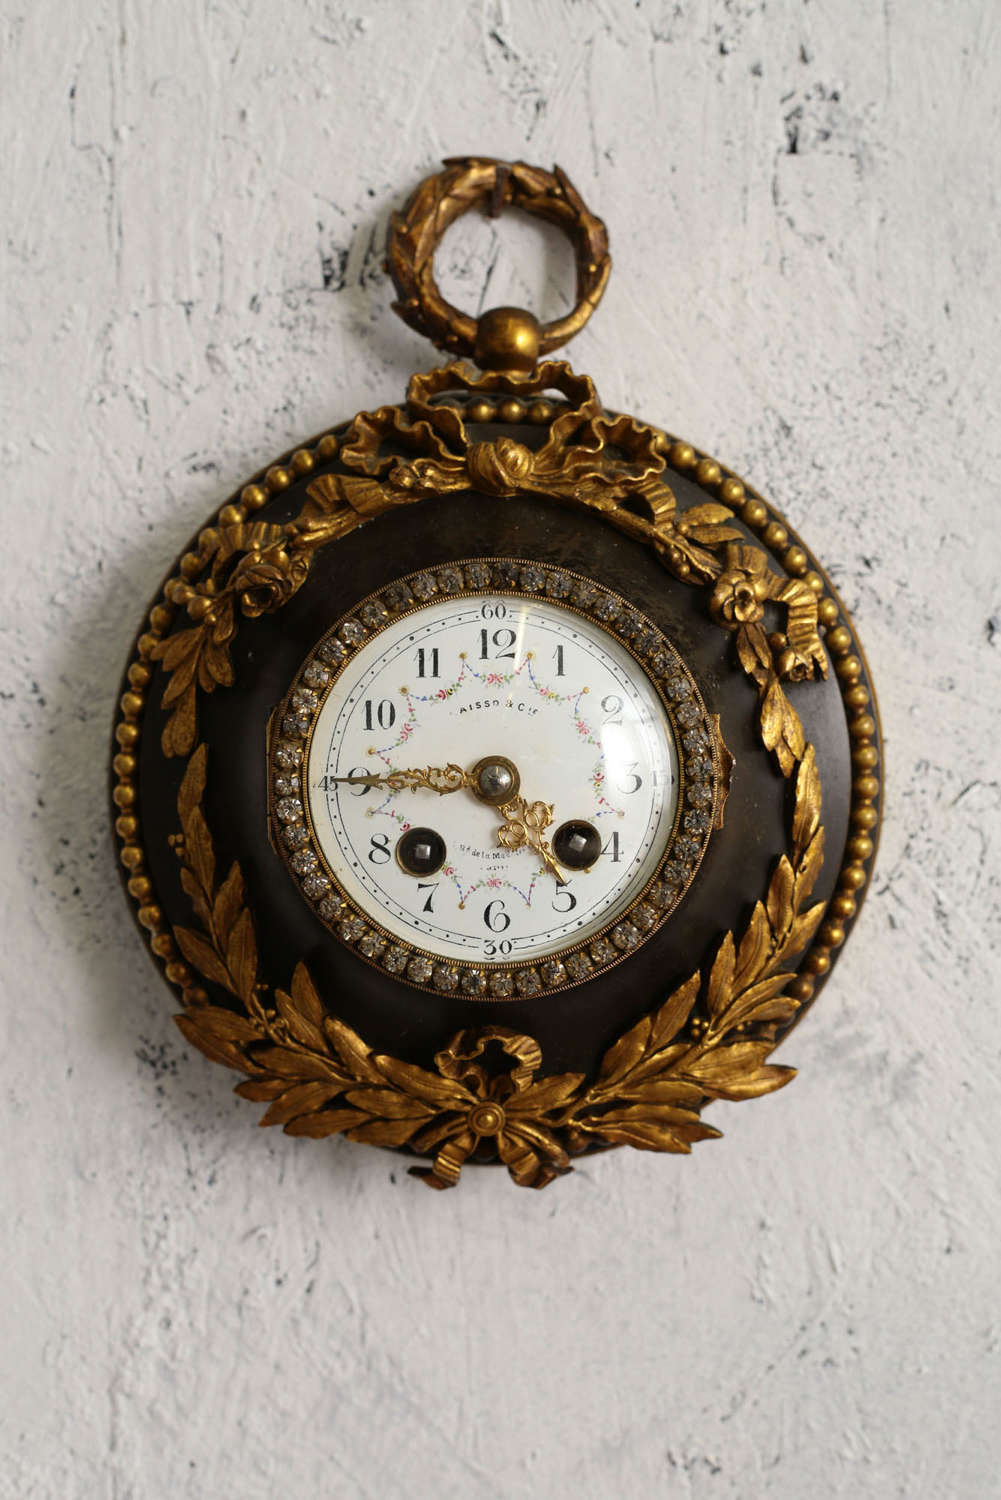 19th century French Decorative wall clock